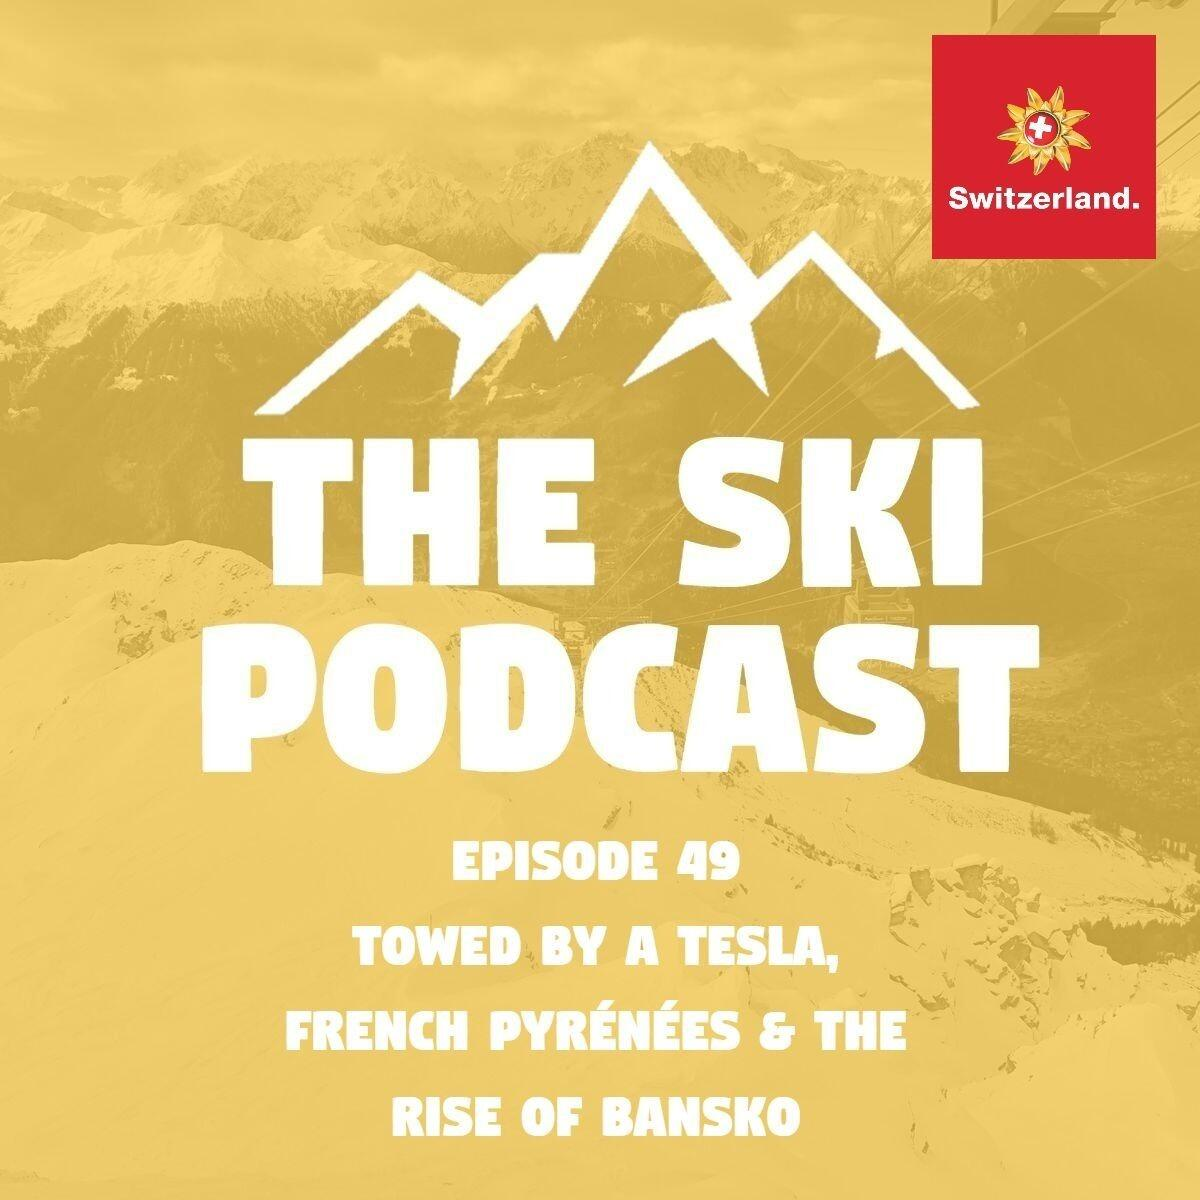 49: Towed by a Tesla, French Pyrénées & the Rise of Bansko